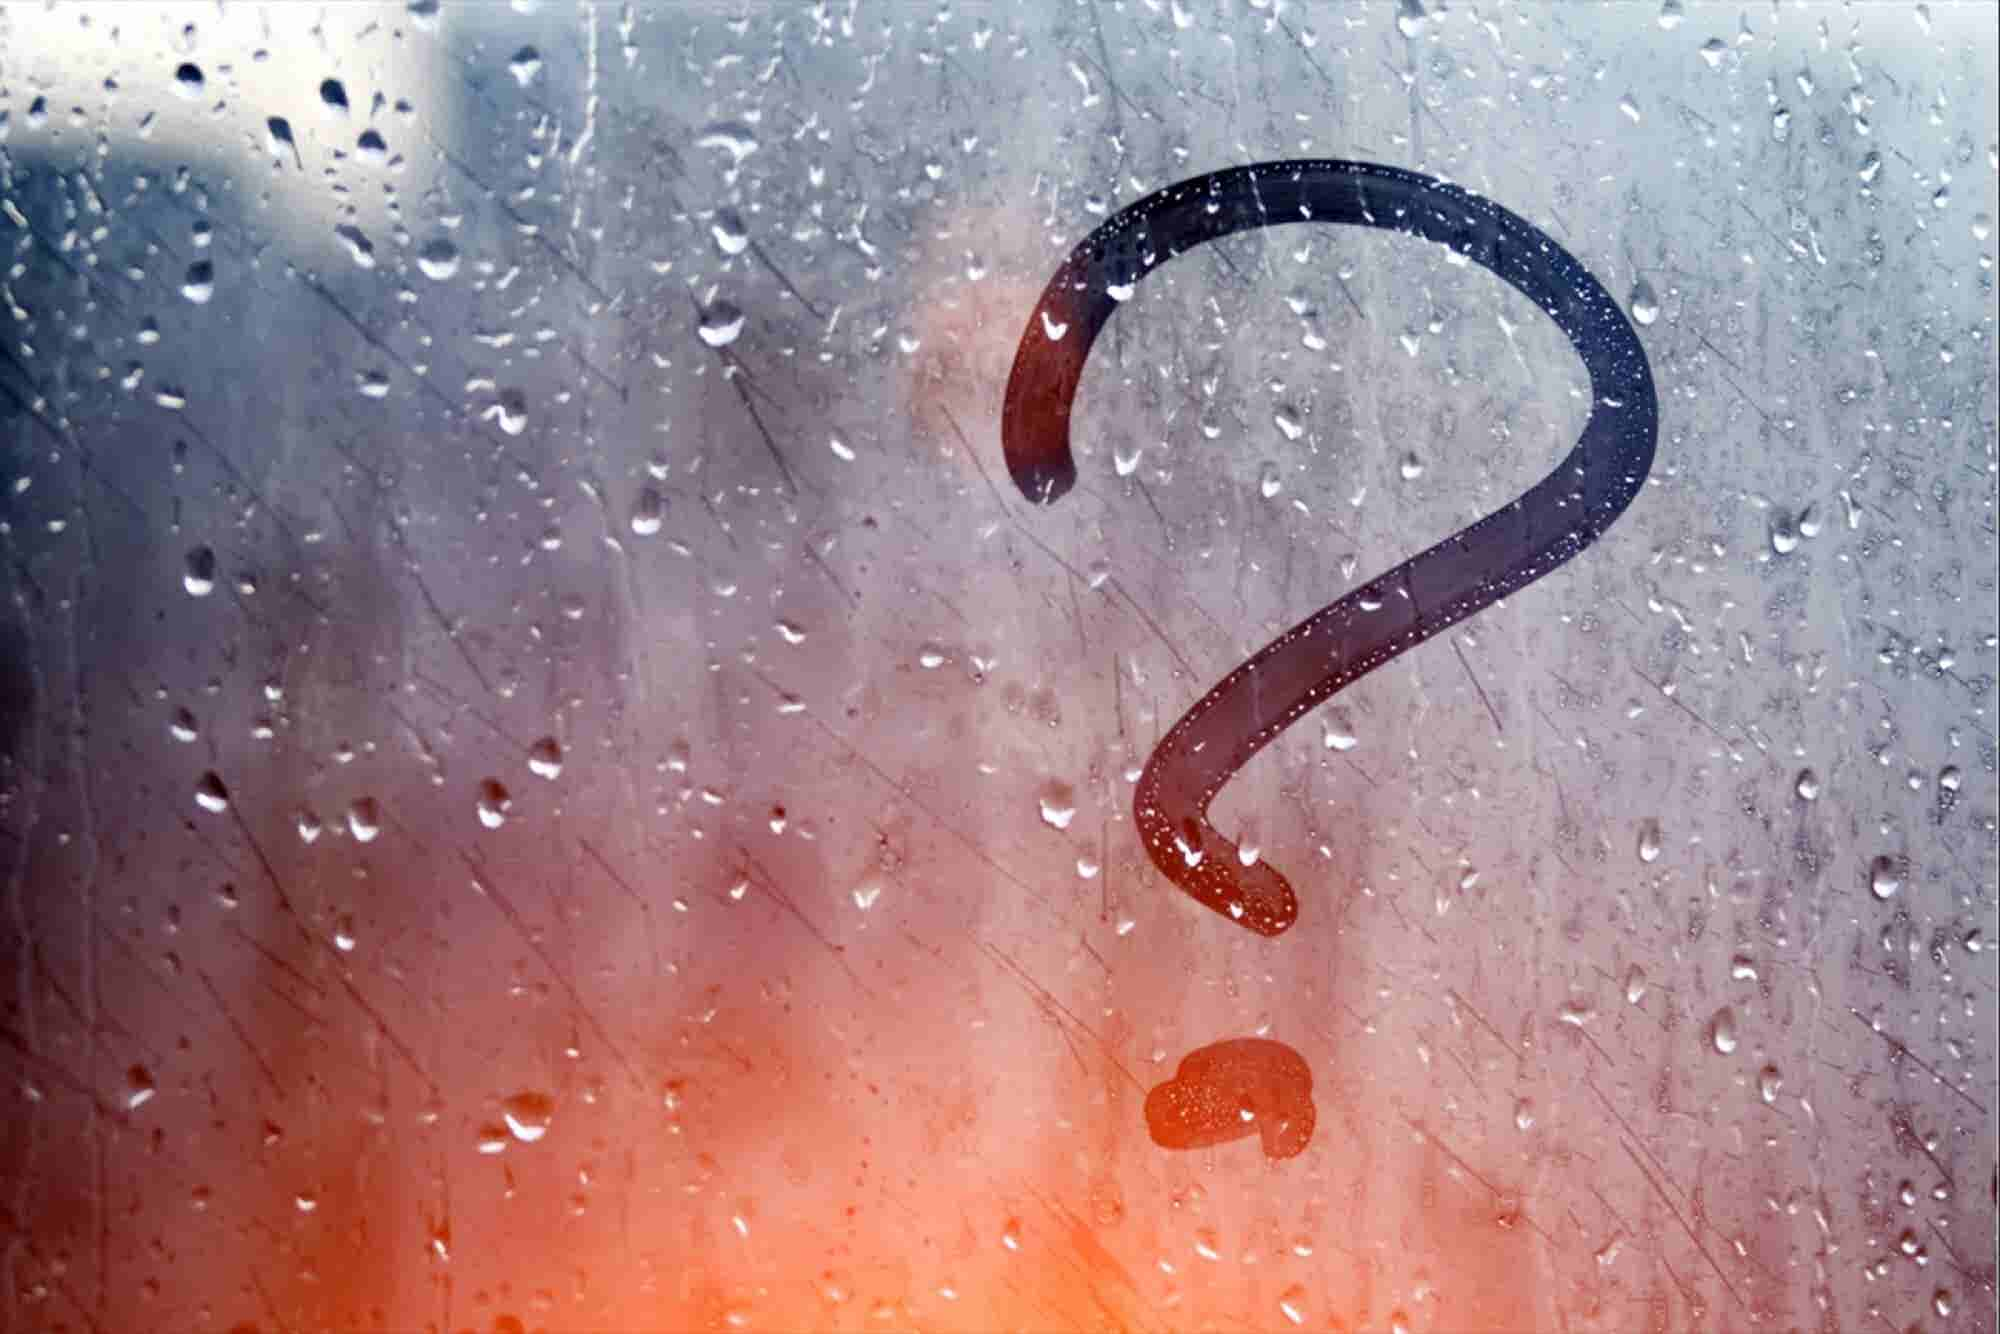 8 Questions to Ask Before Selling Your Startup